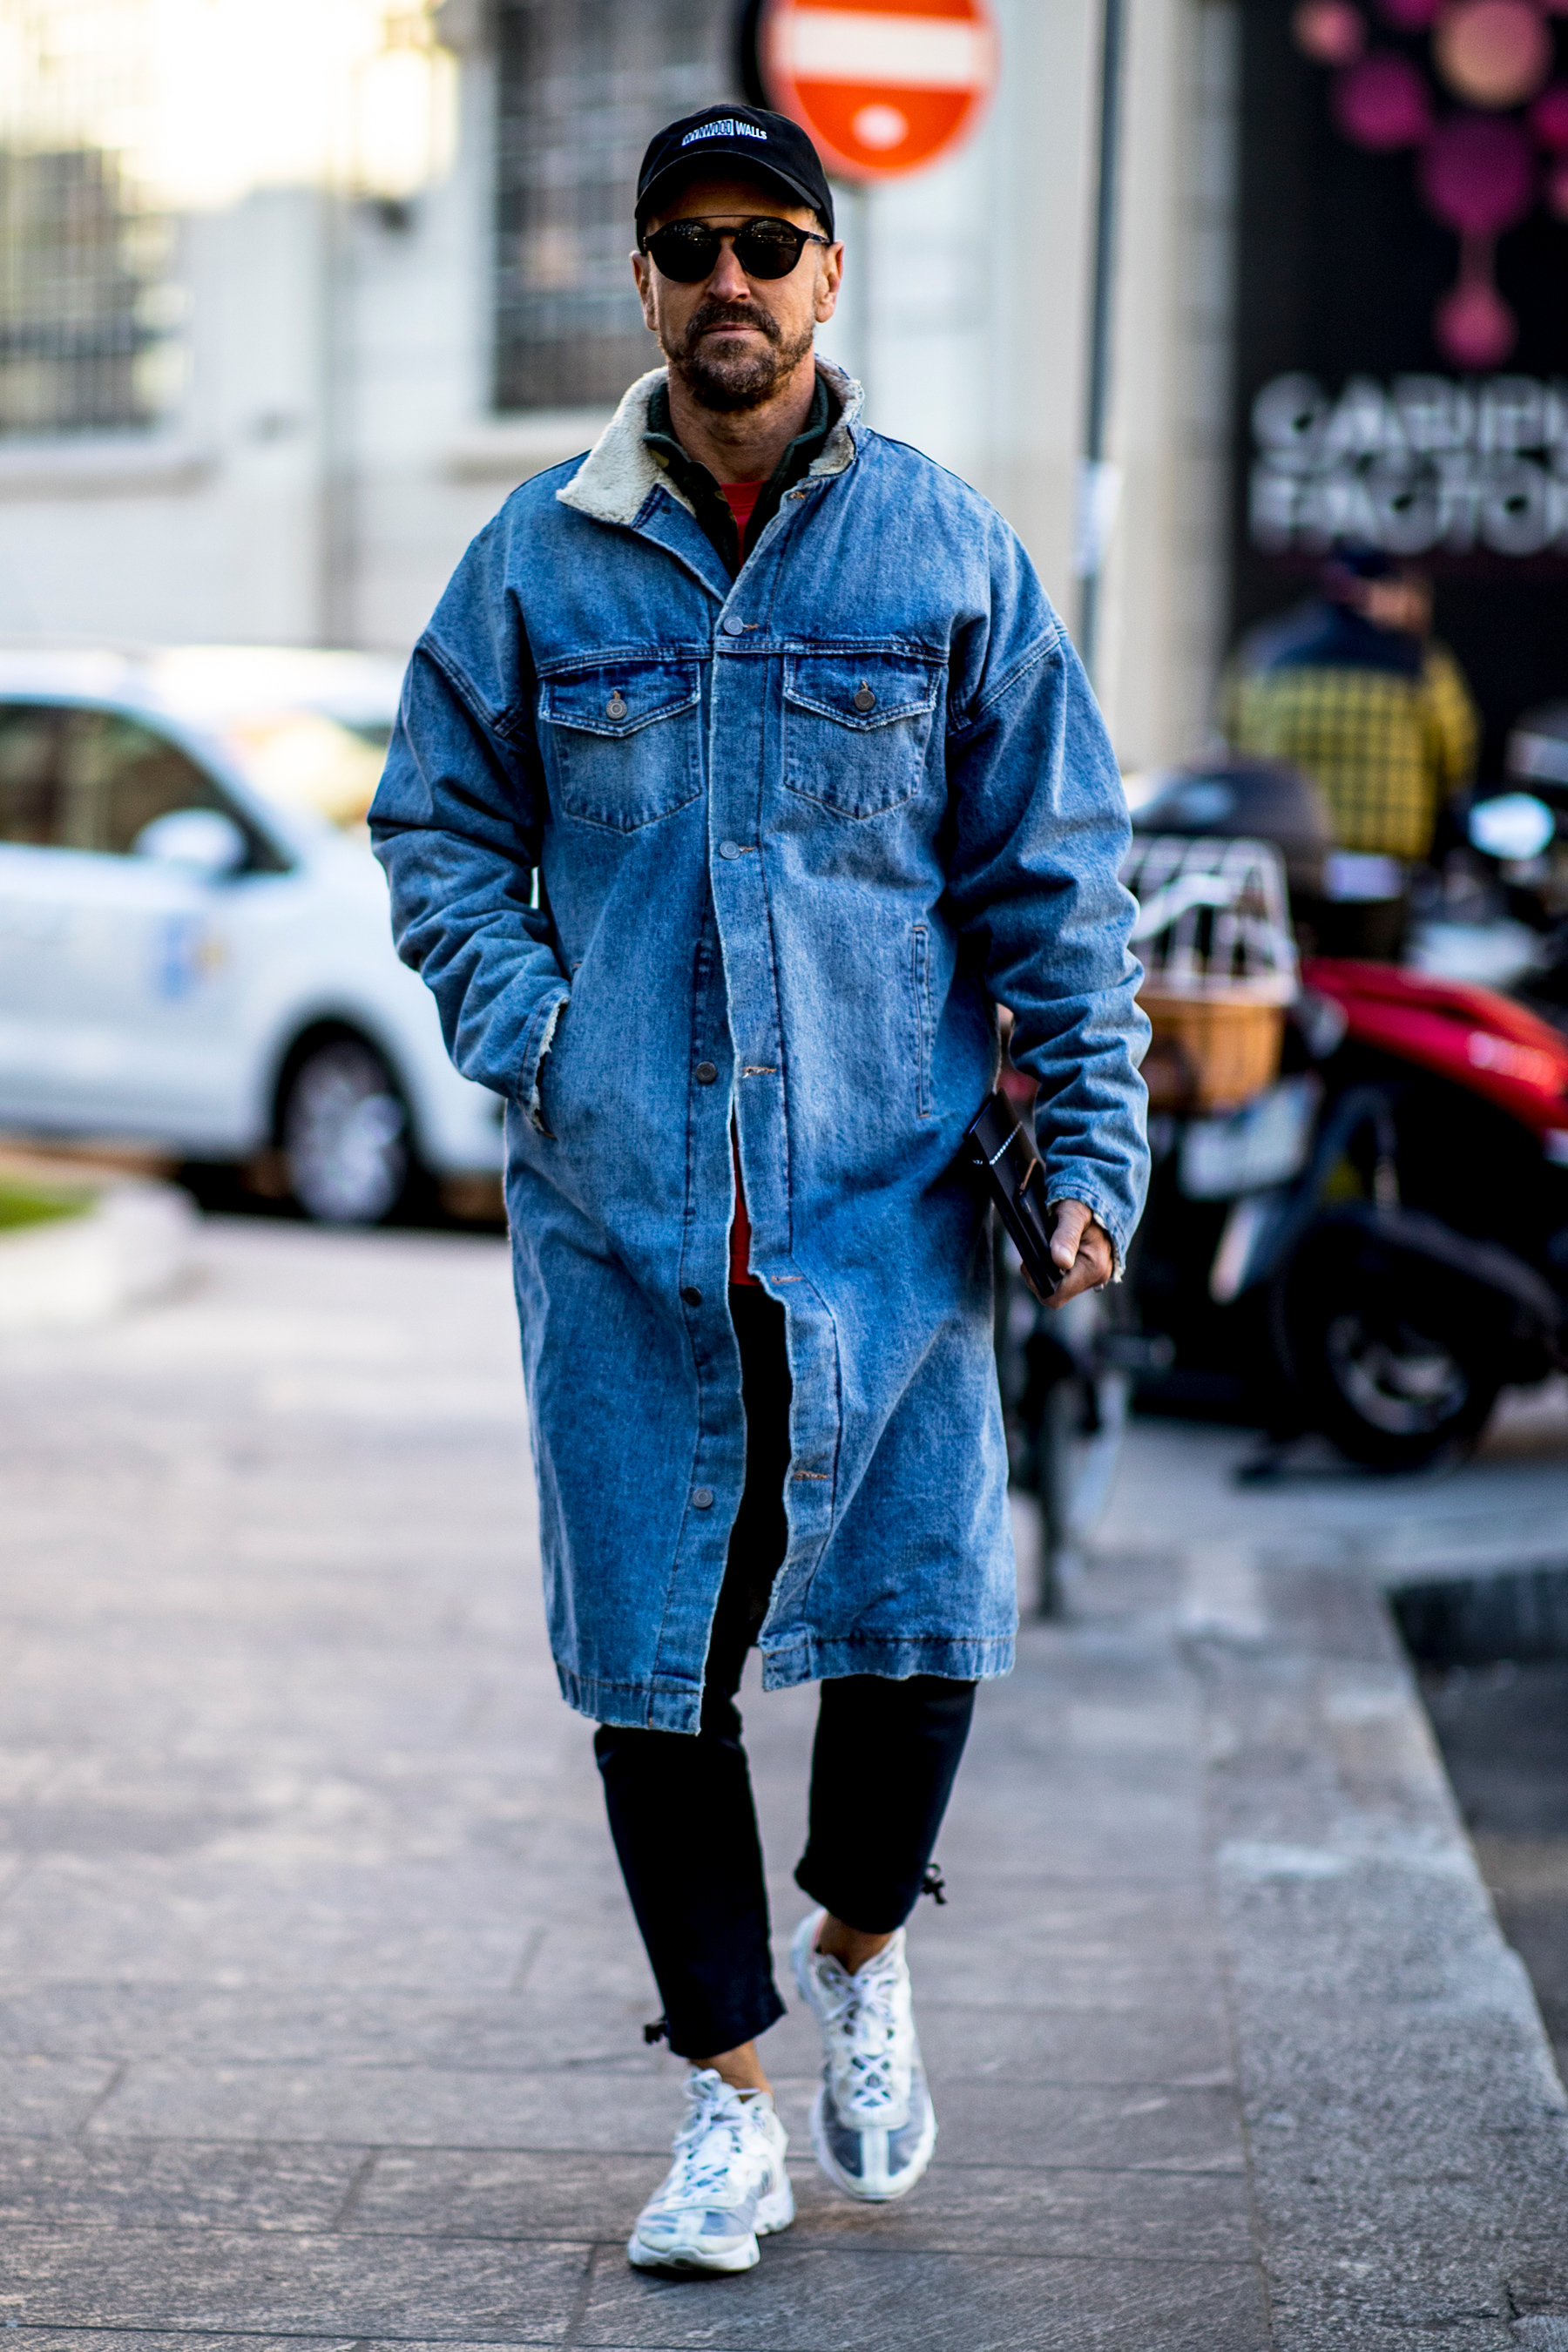 No Street Day 3 Fall 2019 Men's Fashion Show